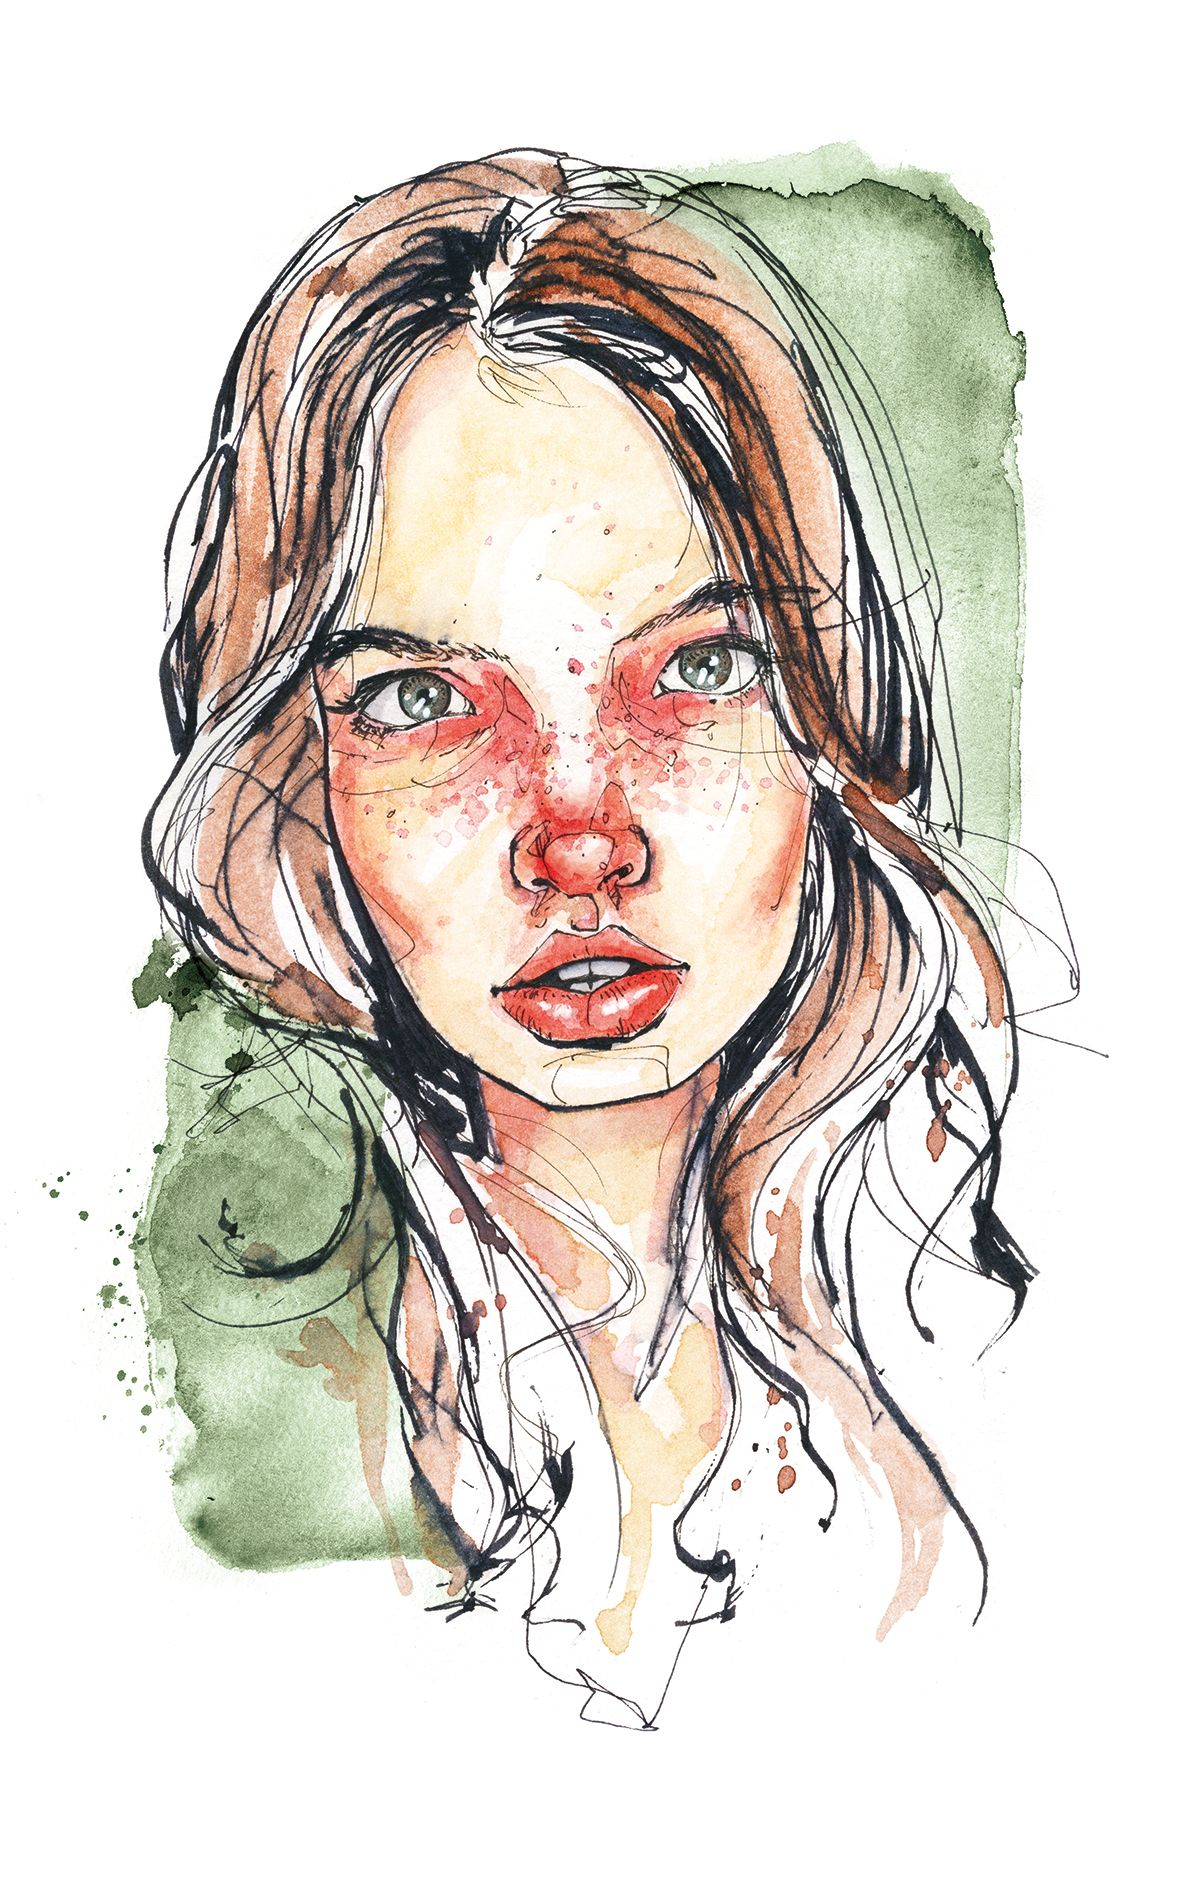 Face Illustration Aquarell Gesicht Wasserfarben Portraits